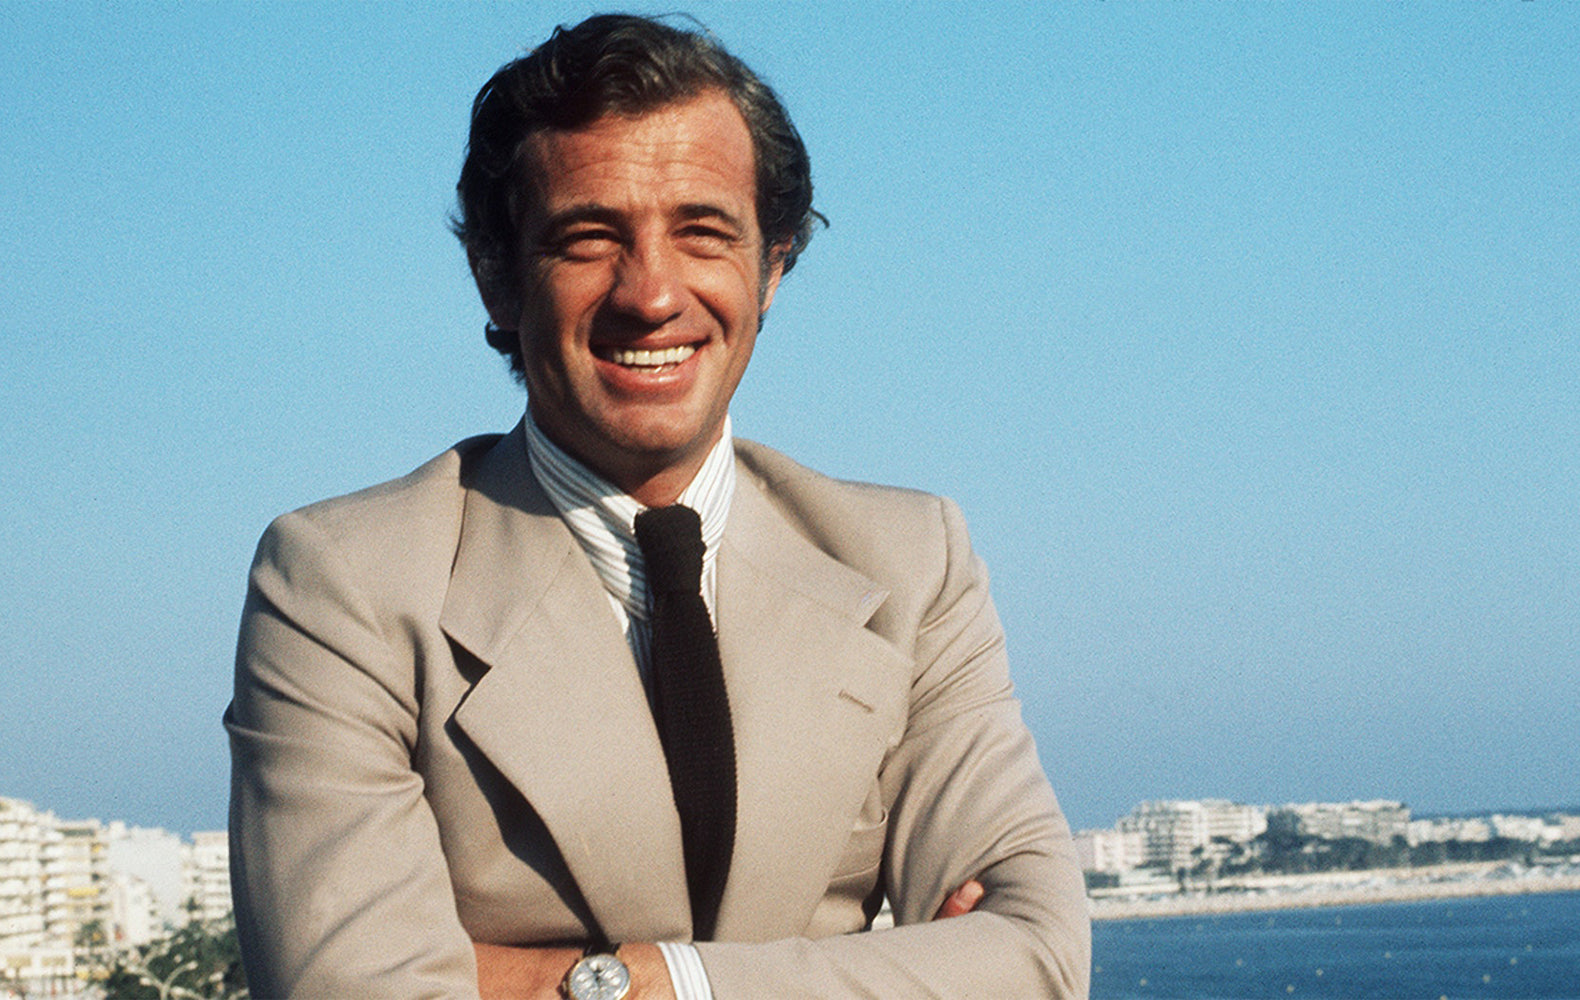 Jean-Paul Belmondo was one of France's biggest screen stars and a symbol of 1960s New Wave cinema